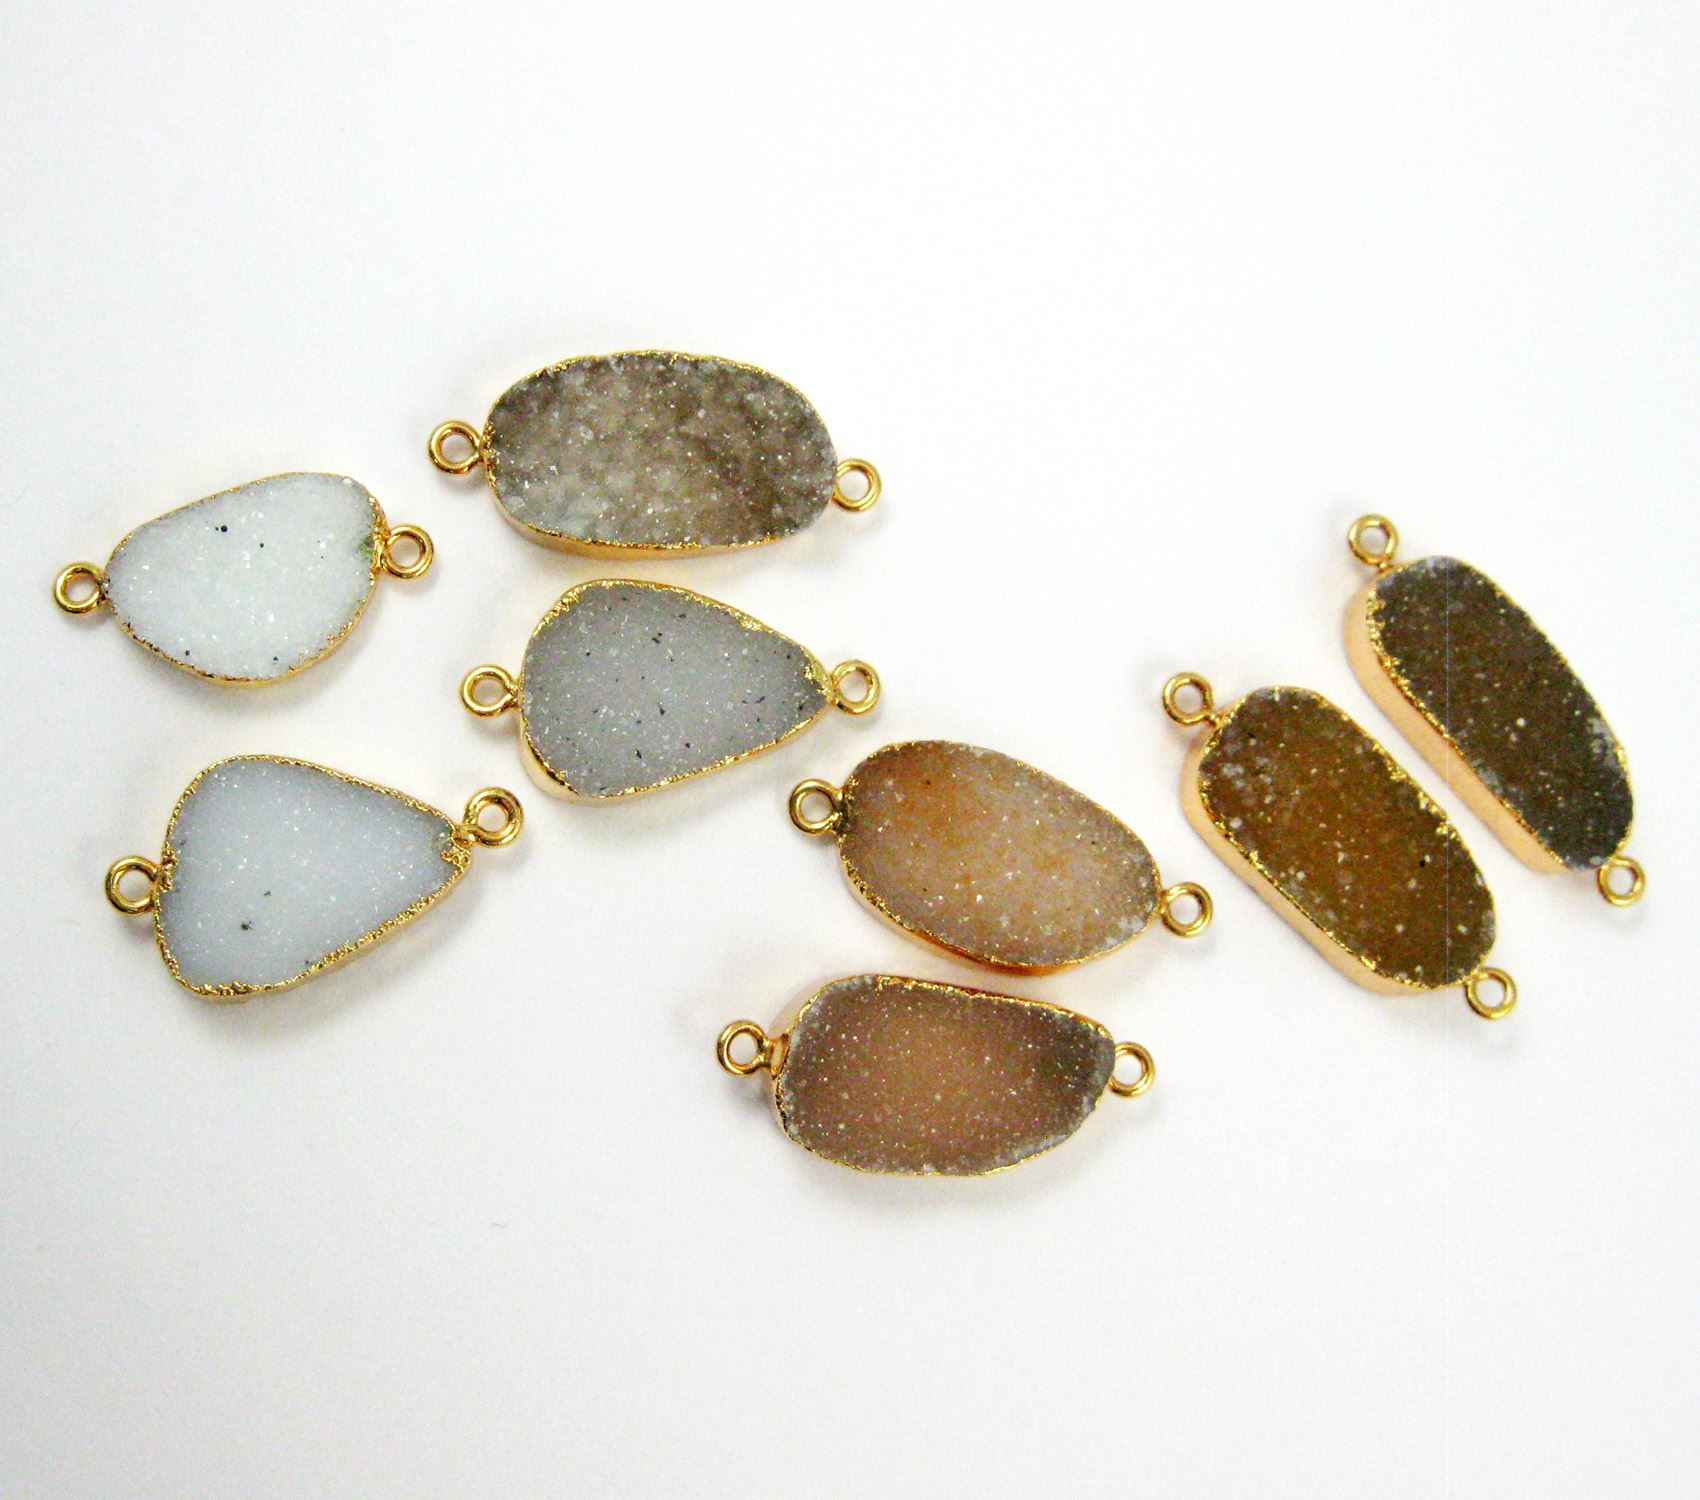 Druzy Agate Pendant, Gold plated Connector, Brown and Grey Druzy Connector Orgnaic Oval Shape- Ginger